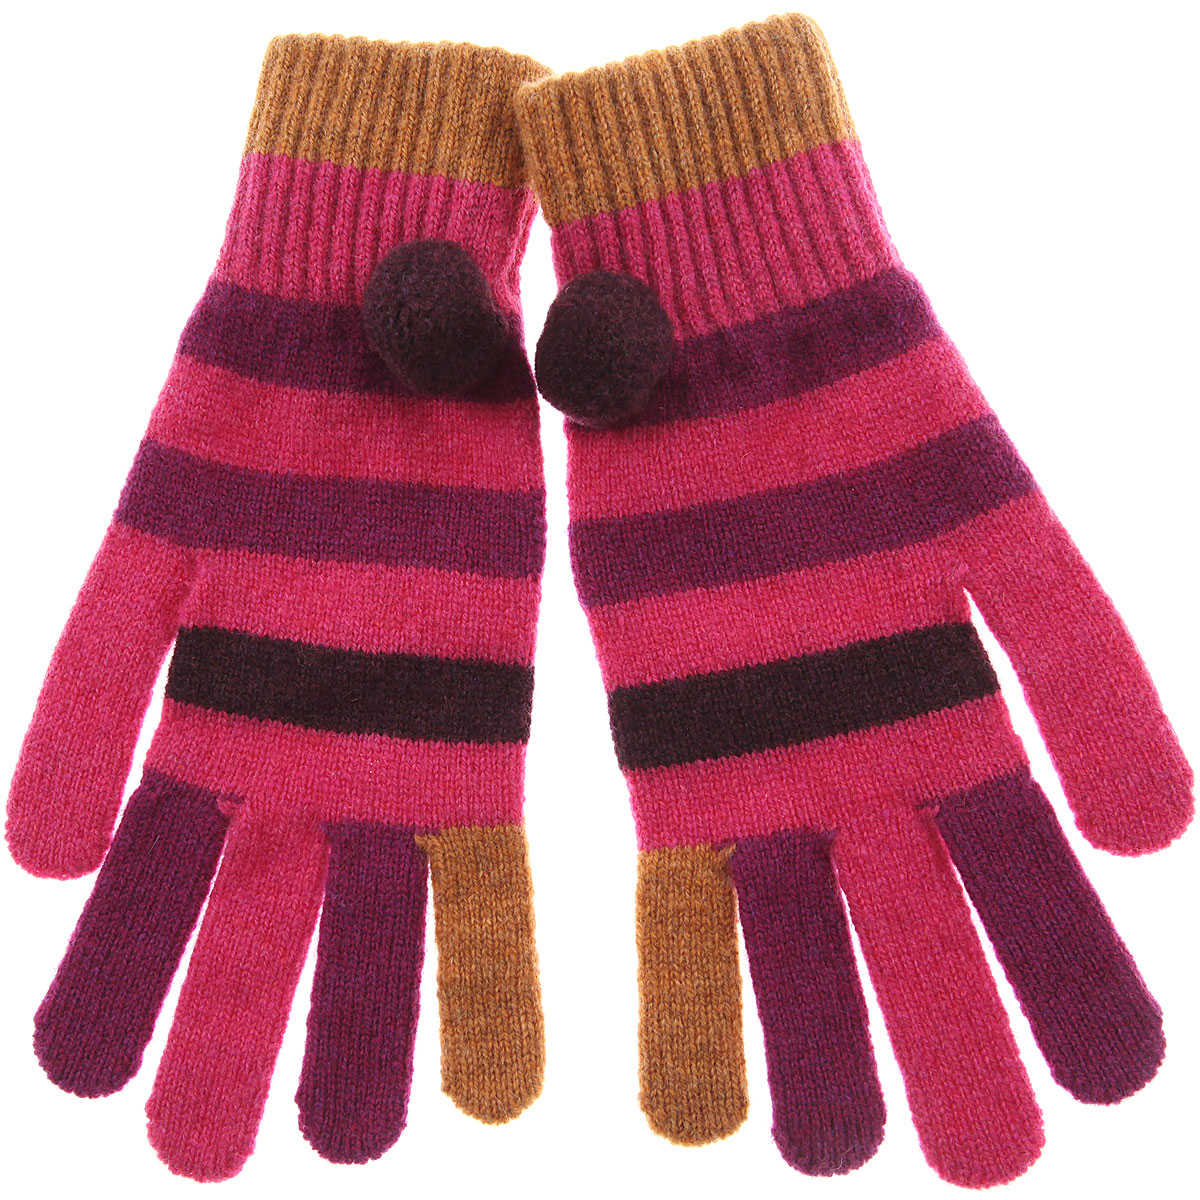 Paul Smith Gloves for Women On Sale Pink SE - GOOFASH